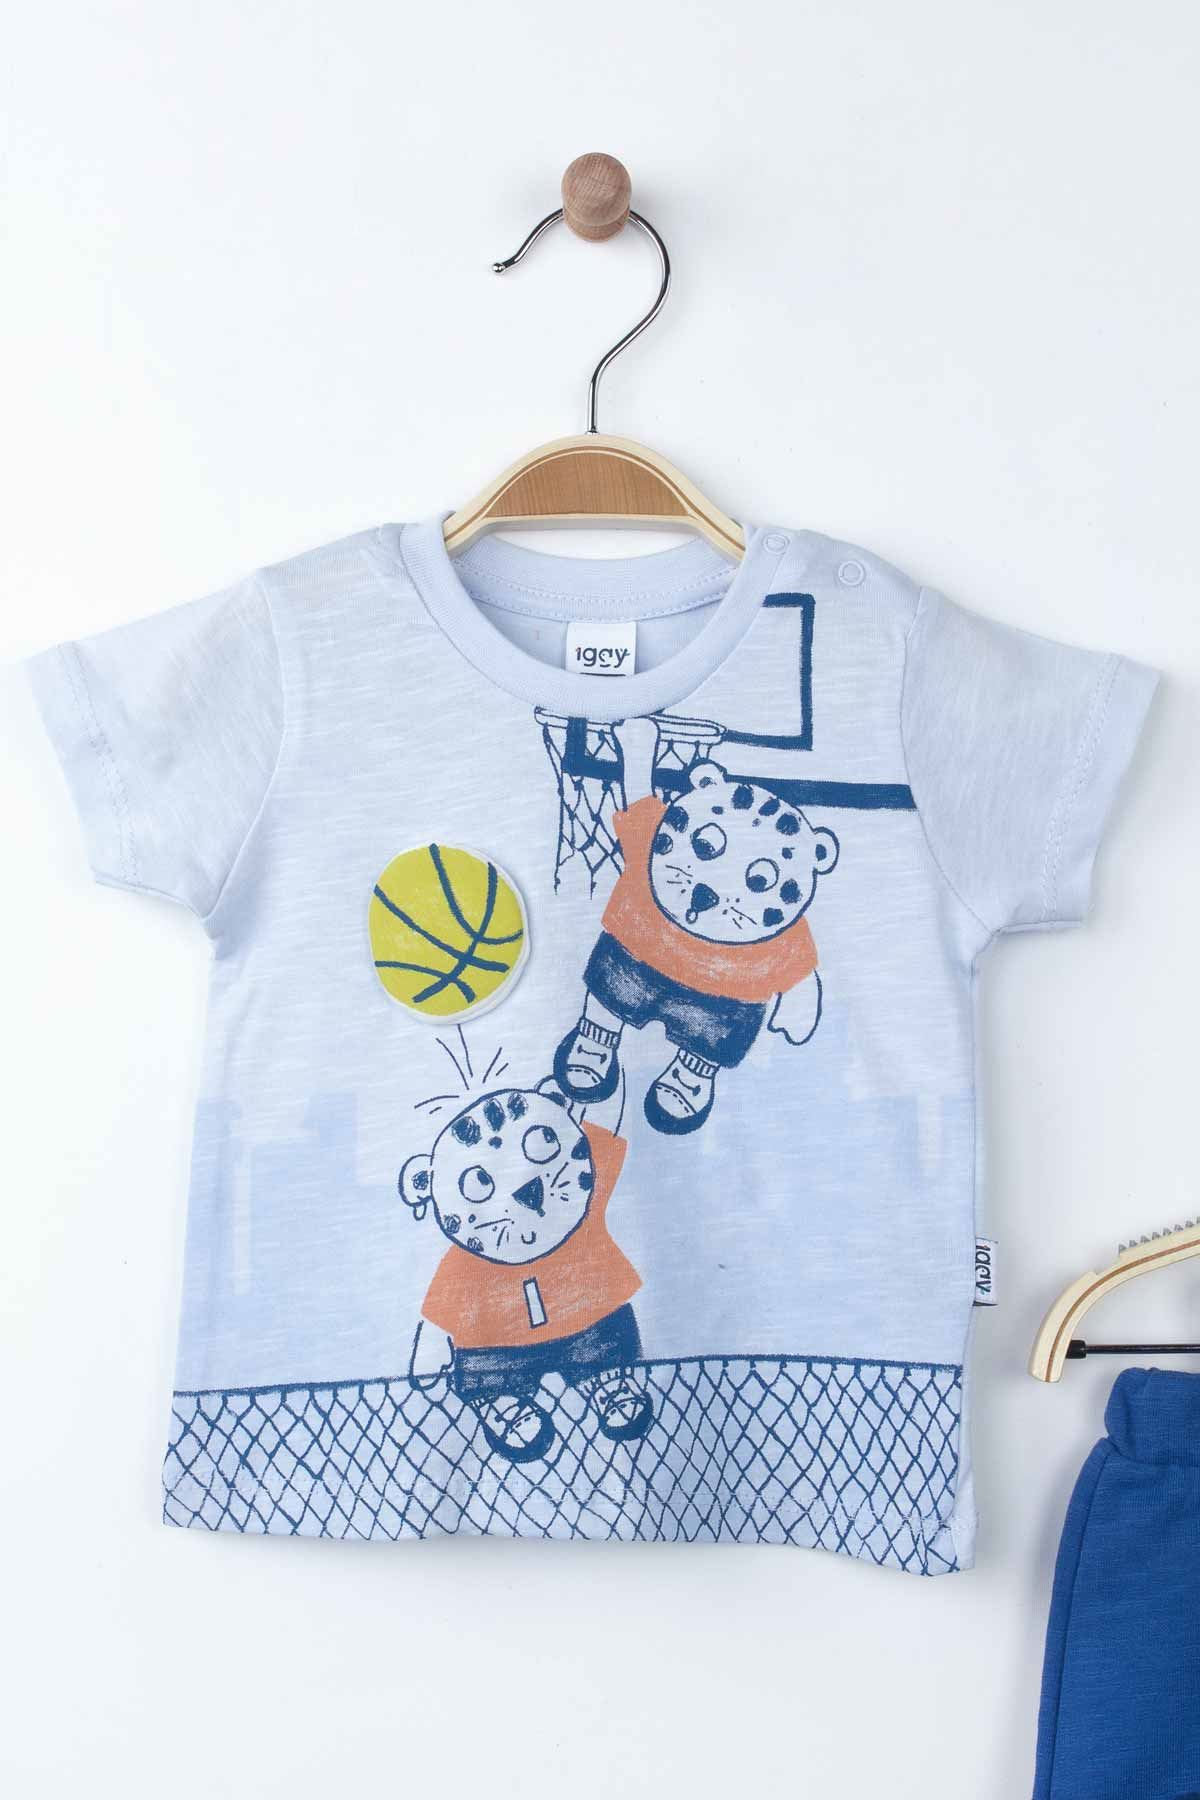 Blue Baby Boy Summer Suit Outfit Bottom Child Clothes Tops Male Boys Babies Outfit Holiday Beach Kids wear Suit Clothing model